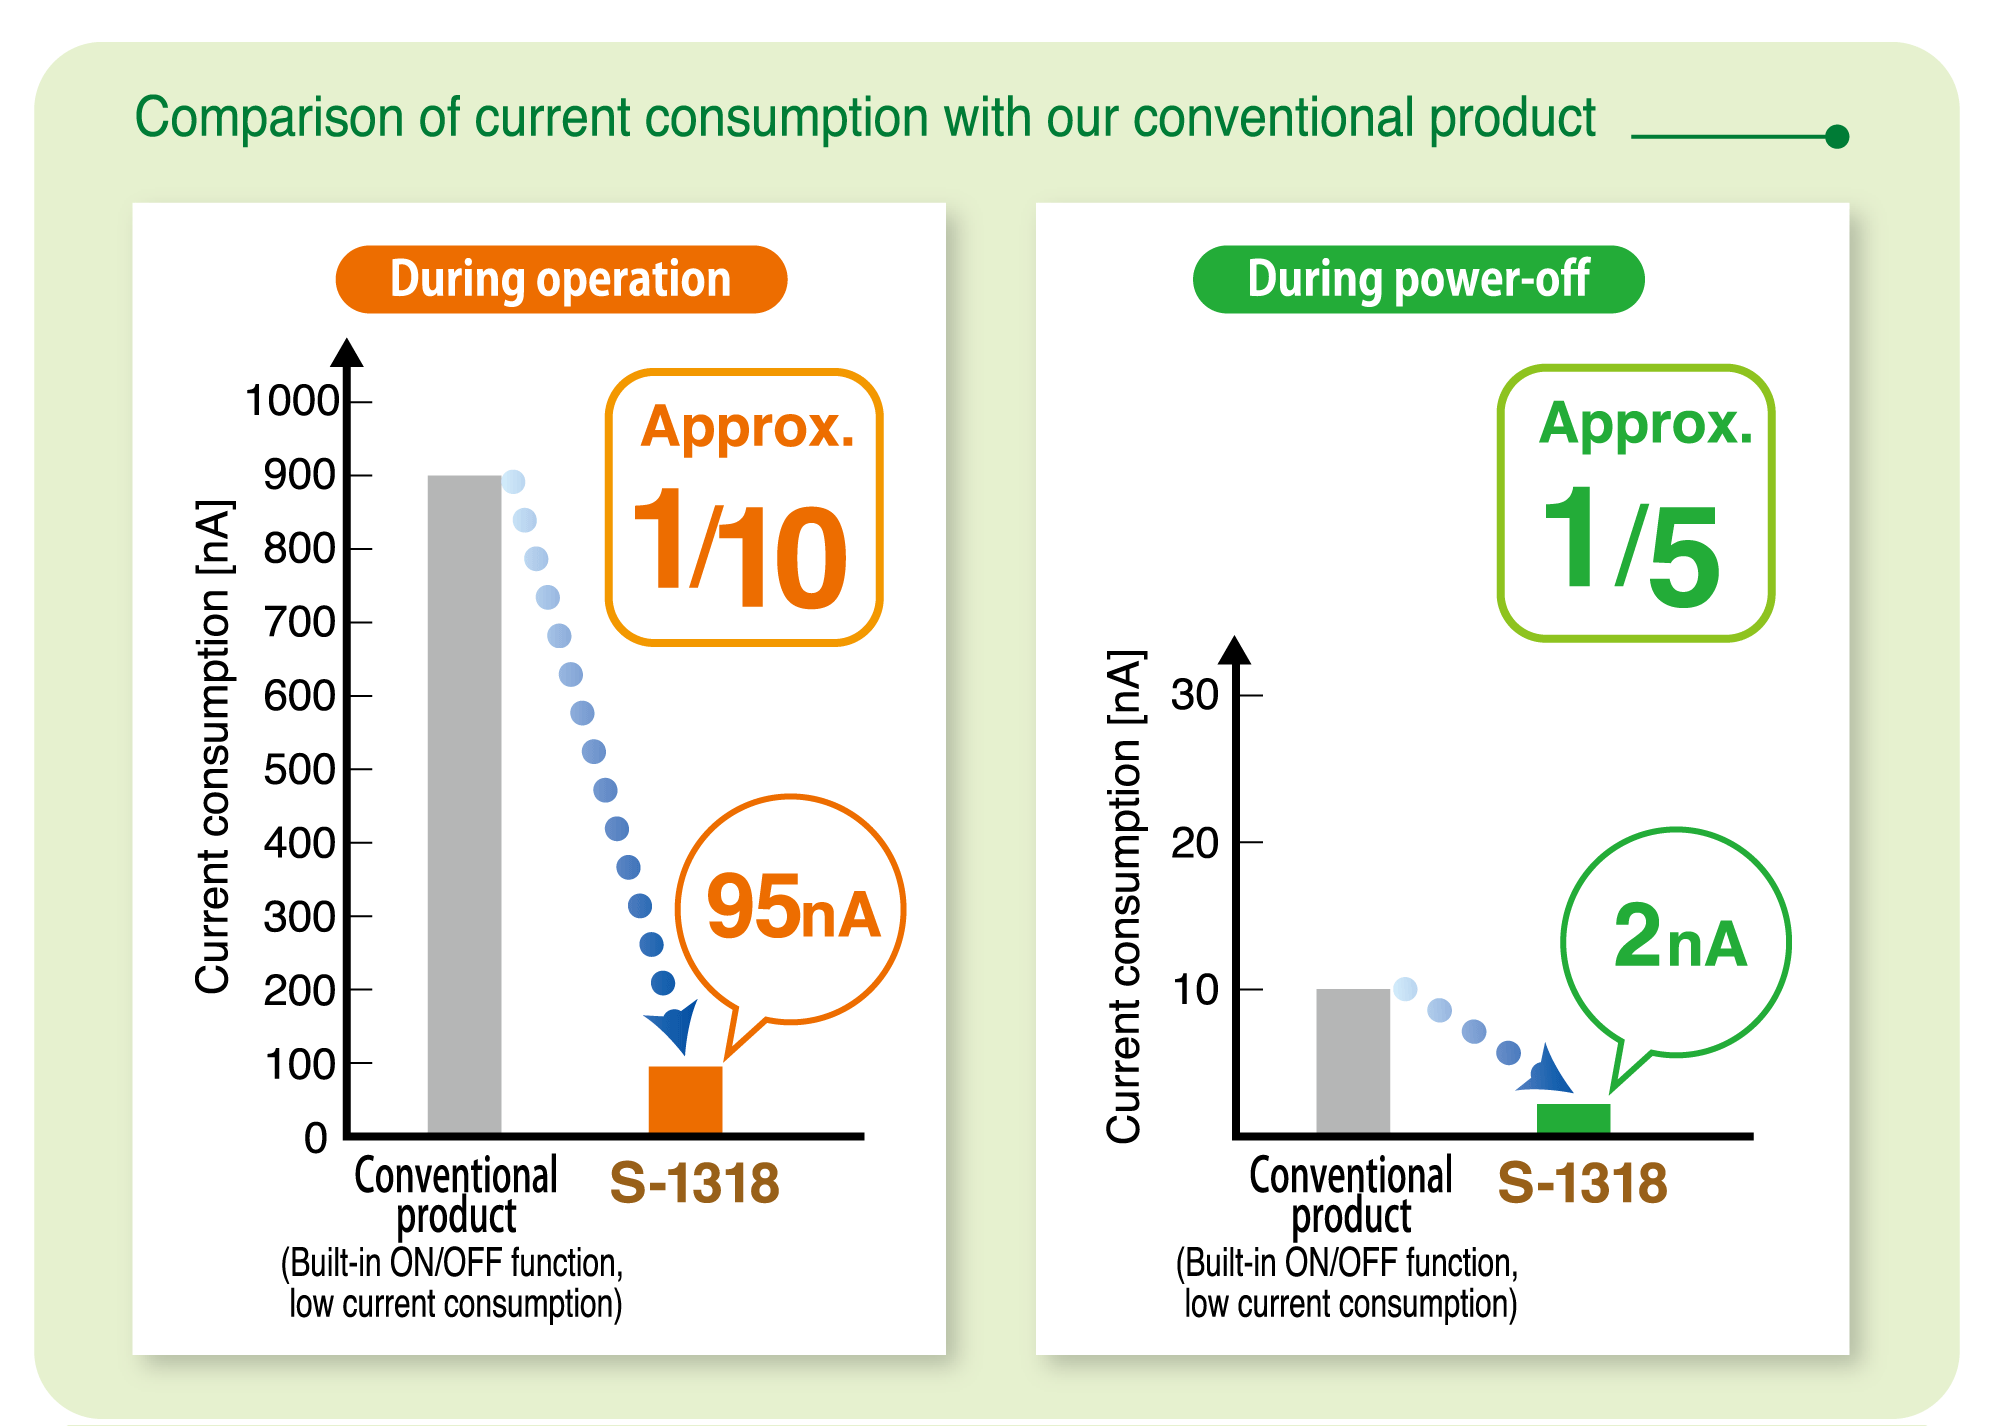 Comparison of current consumption